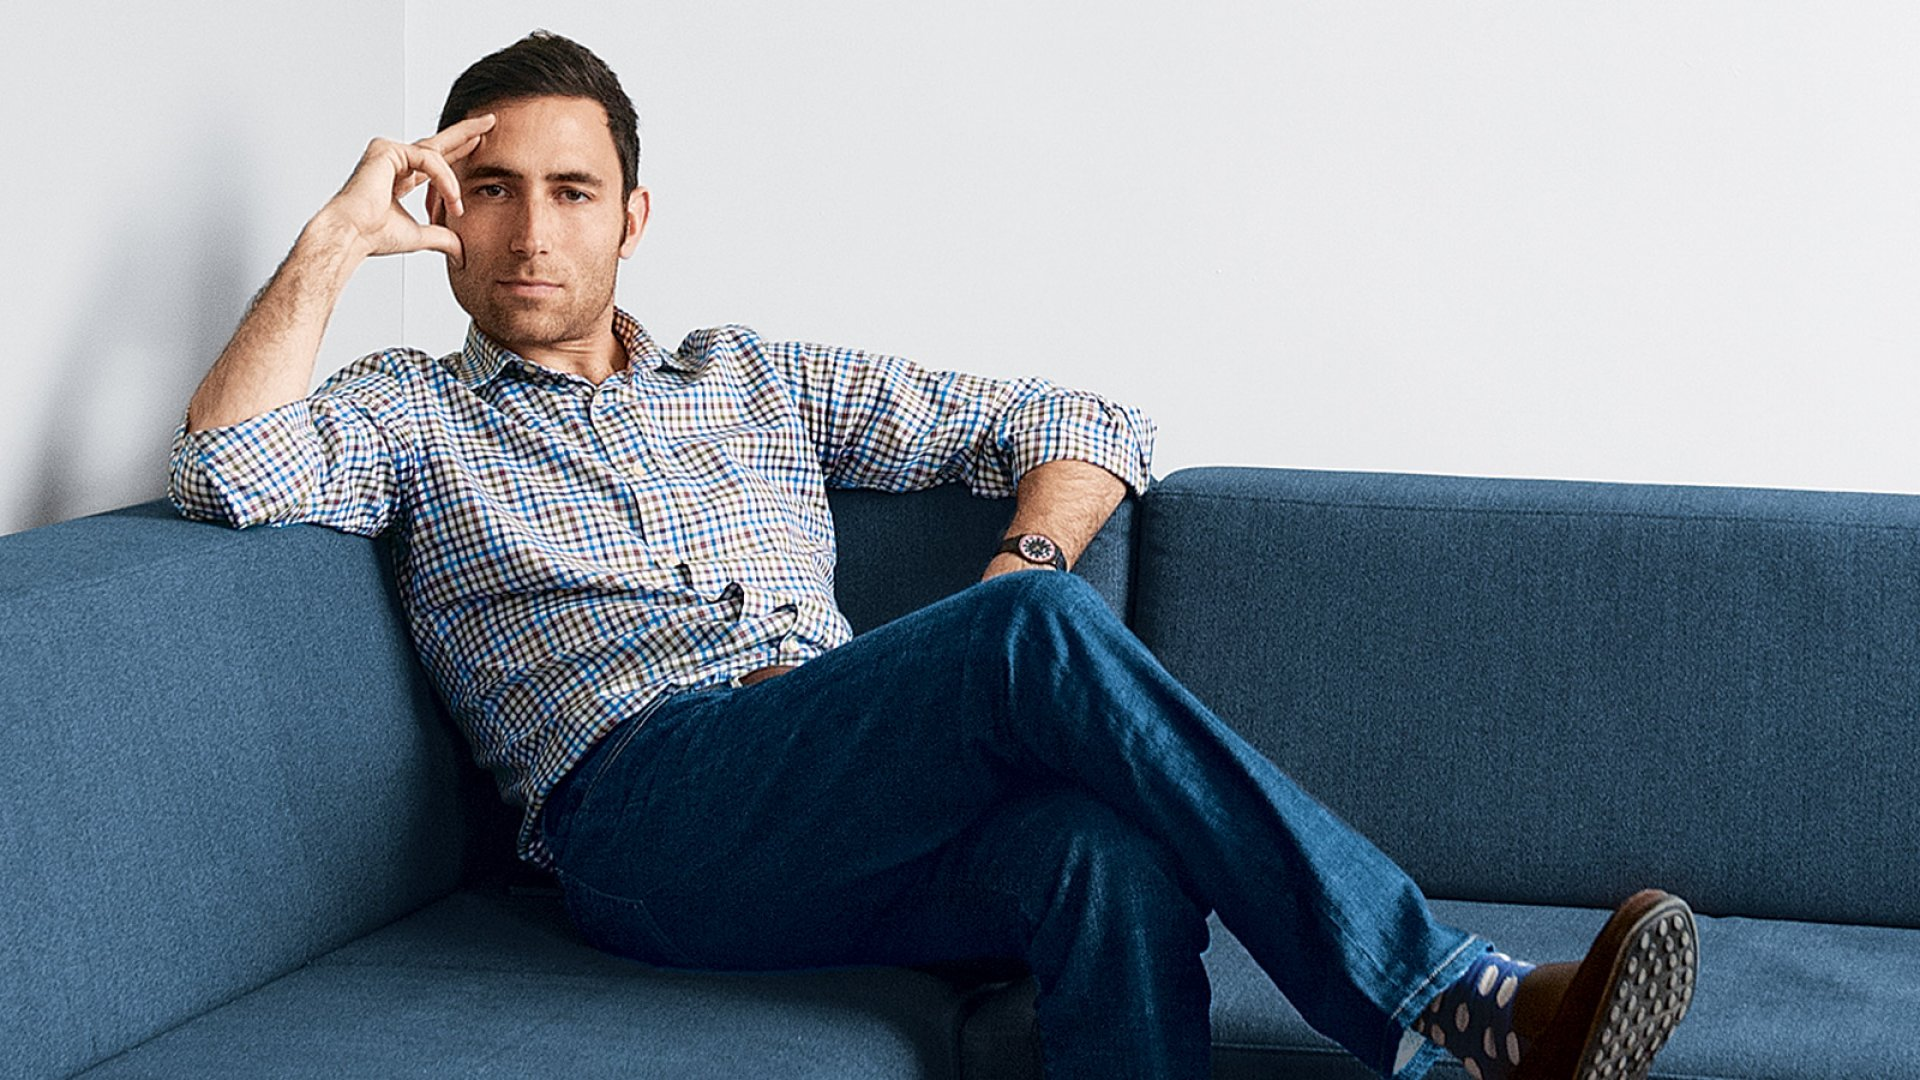 <b>BENCHMARKS</b><br> Scott Belsky sold Behance for a reported $150 million. The Behance community is still growing.